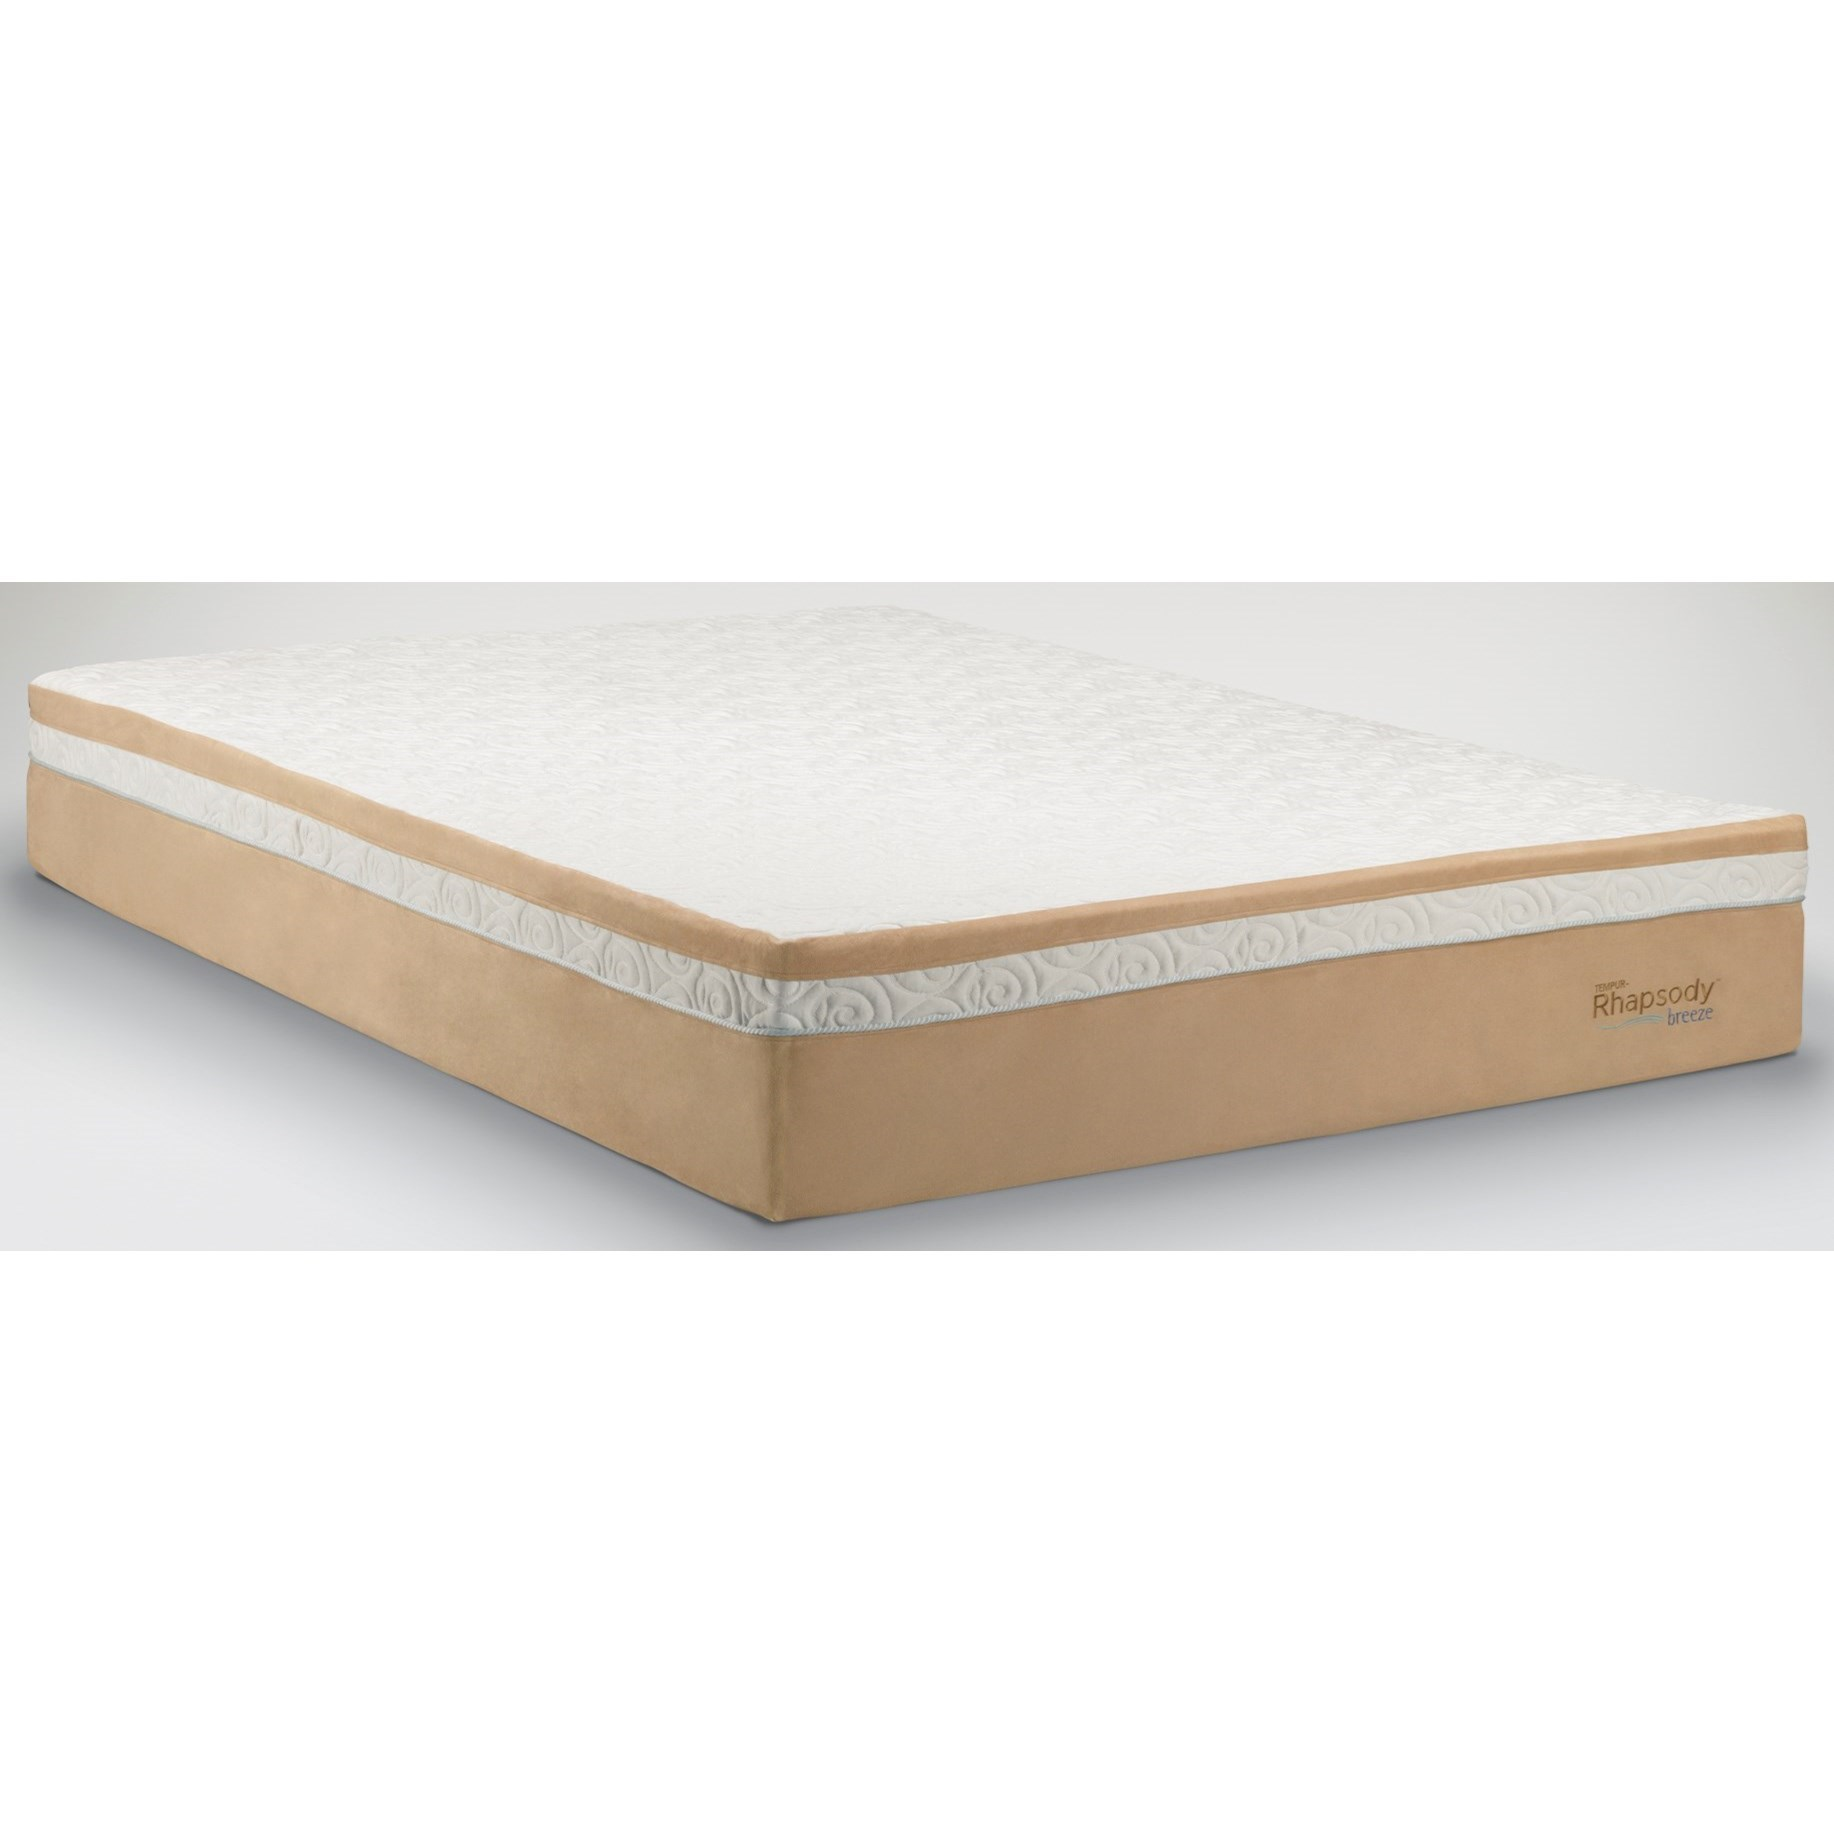 Tempur-Pedic® TEMPUR-Contour™ Rhapsody Breeze Cal King Medium Firm Mattress - Item Number: 10104180